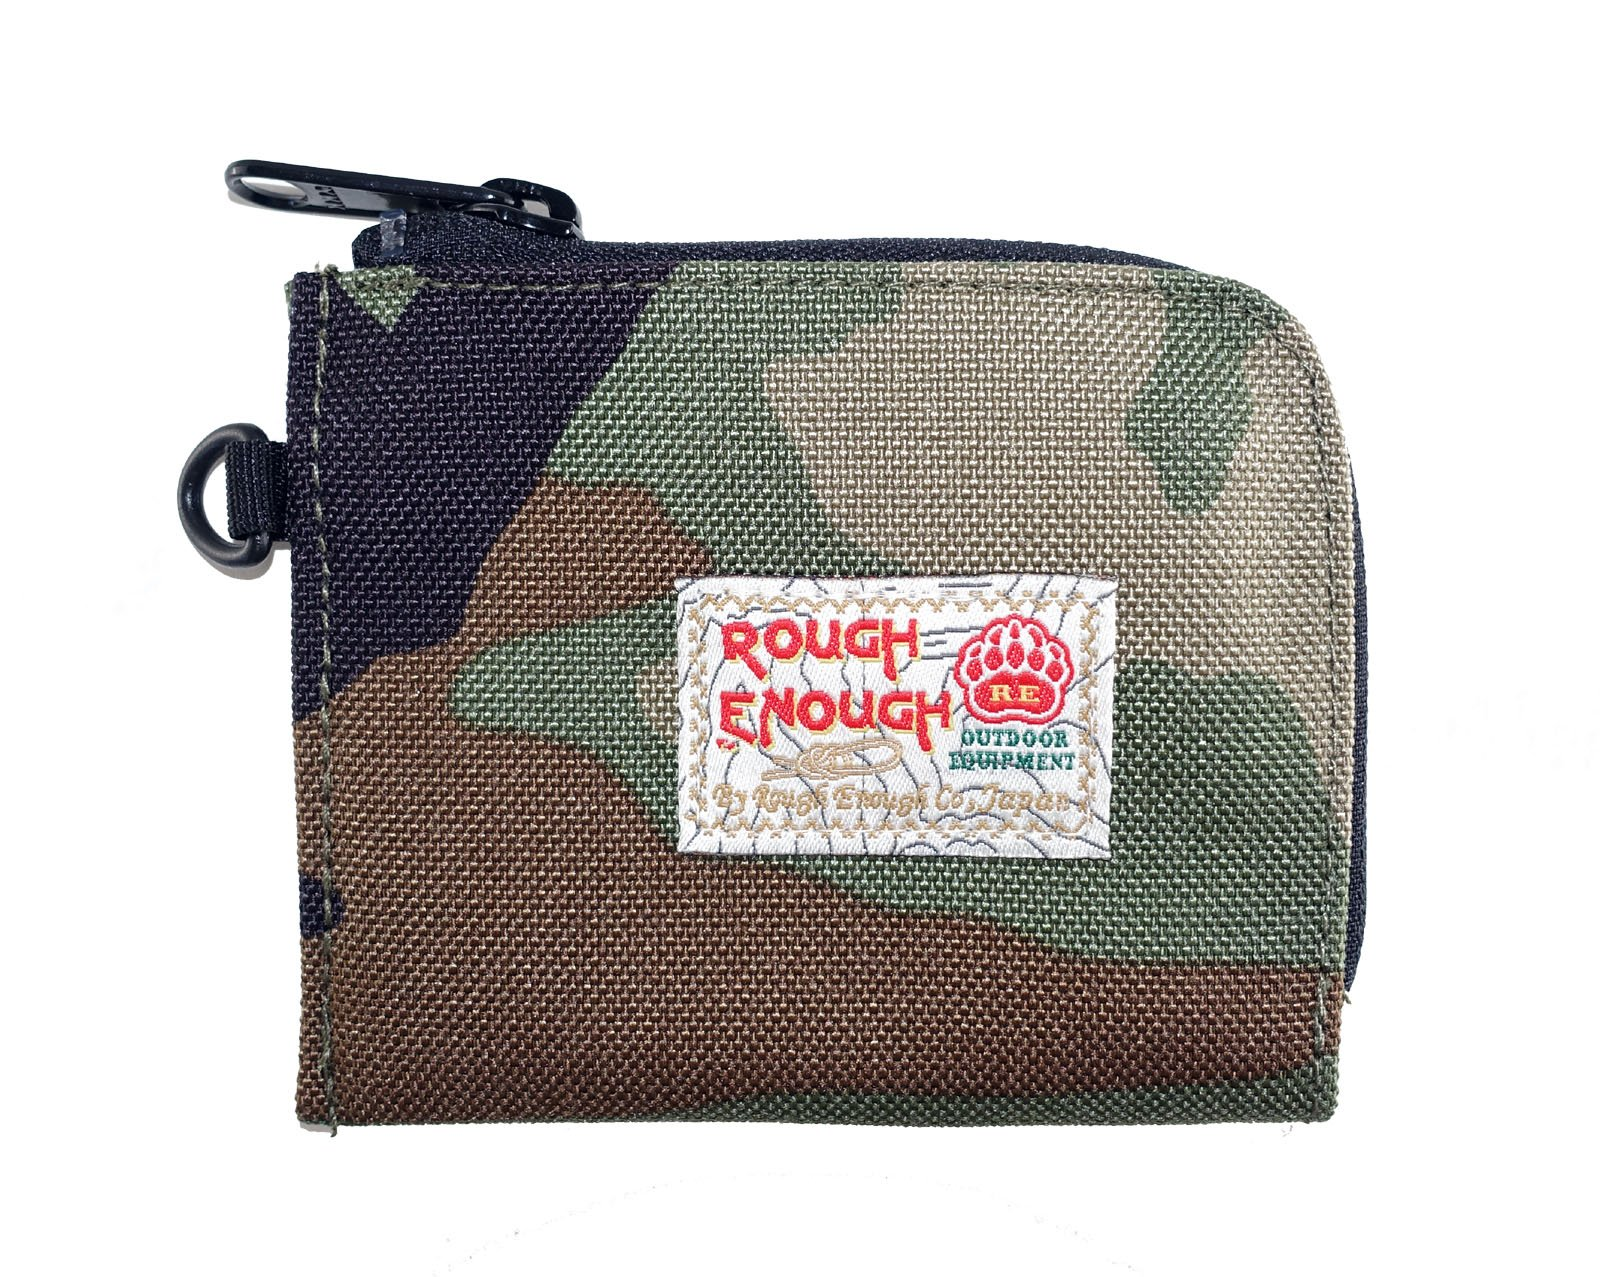 Rough Enough CORDURA Polyester Small Mini Bascis Stylish Portable Clutch Square Pocket Pouch Purse Case Bag Wallet Holder Organizer with zipper for Coins Cards Suits Boys Kids Students Men Camo